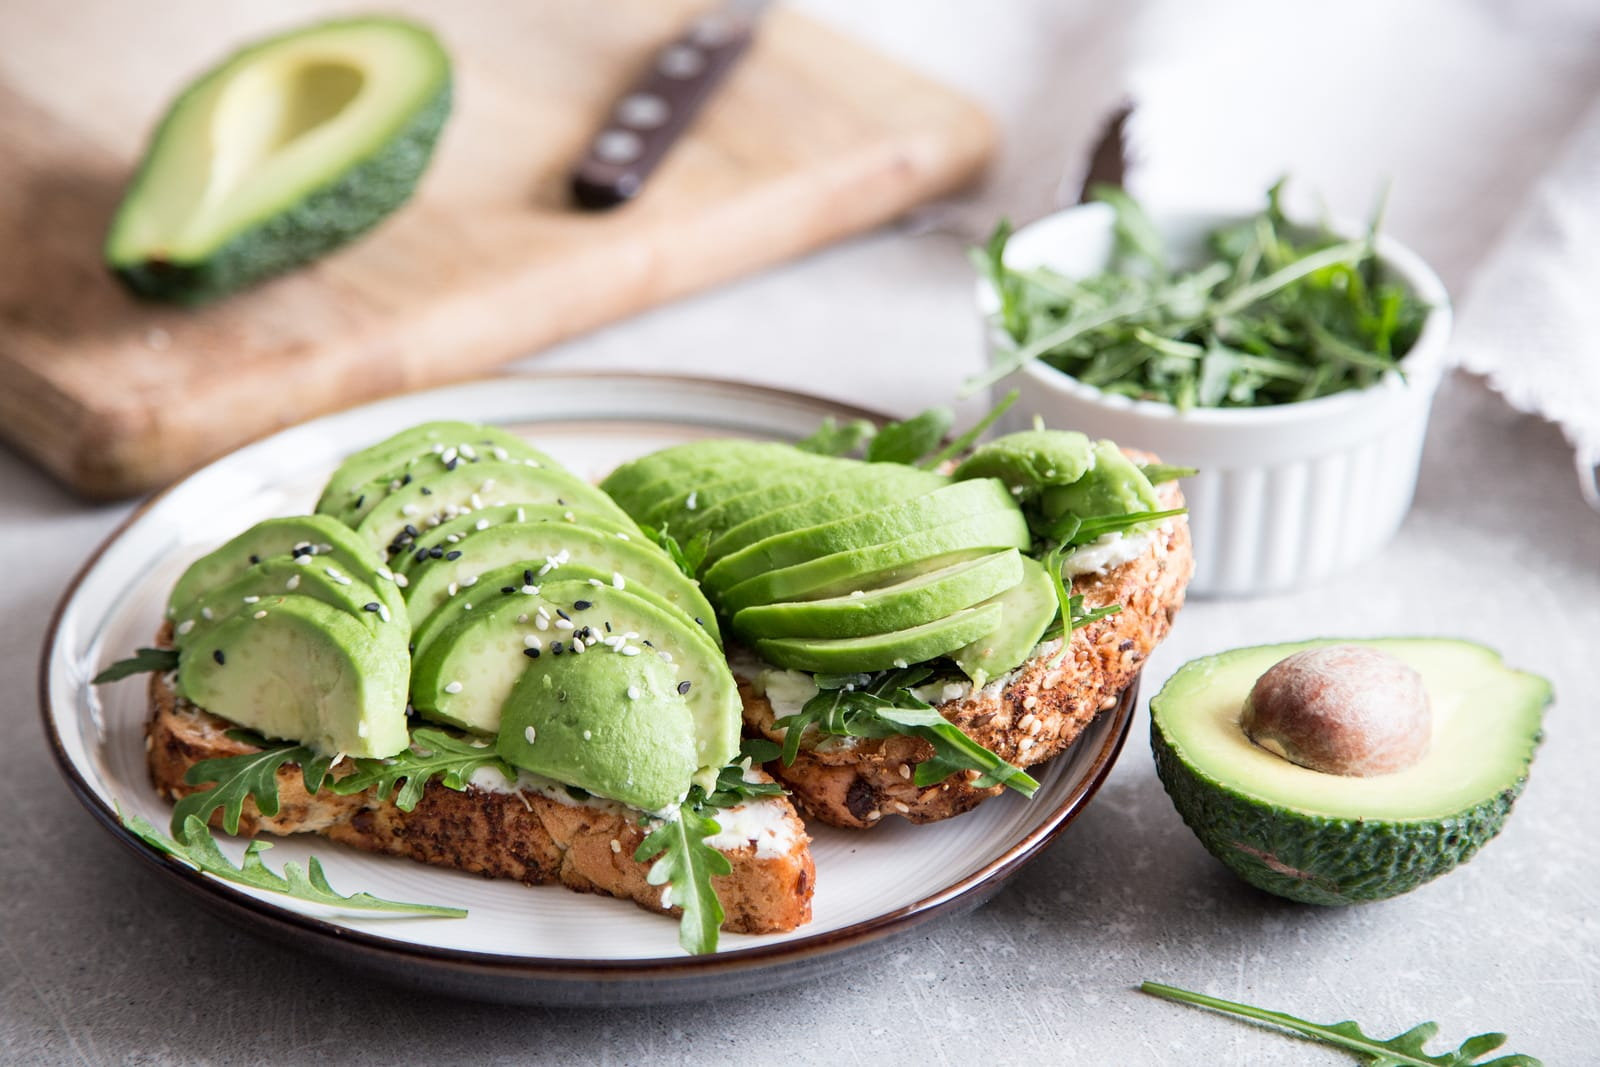 What to eat when stressed- avocados